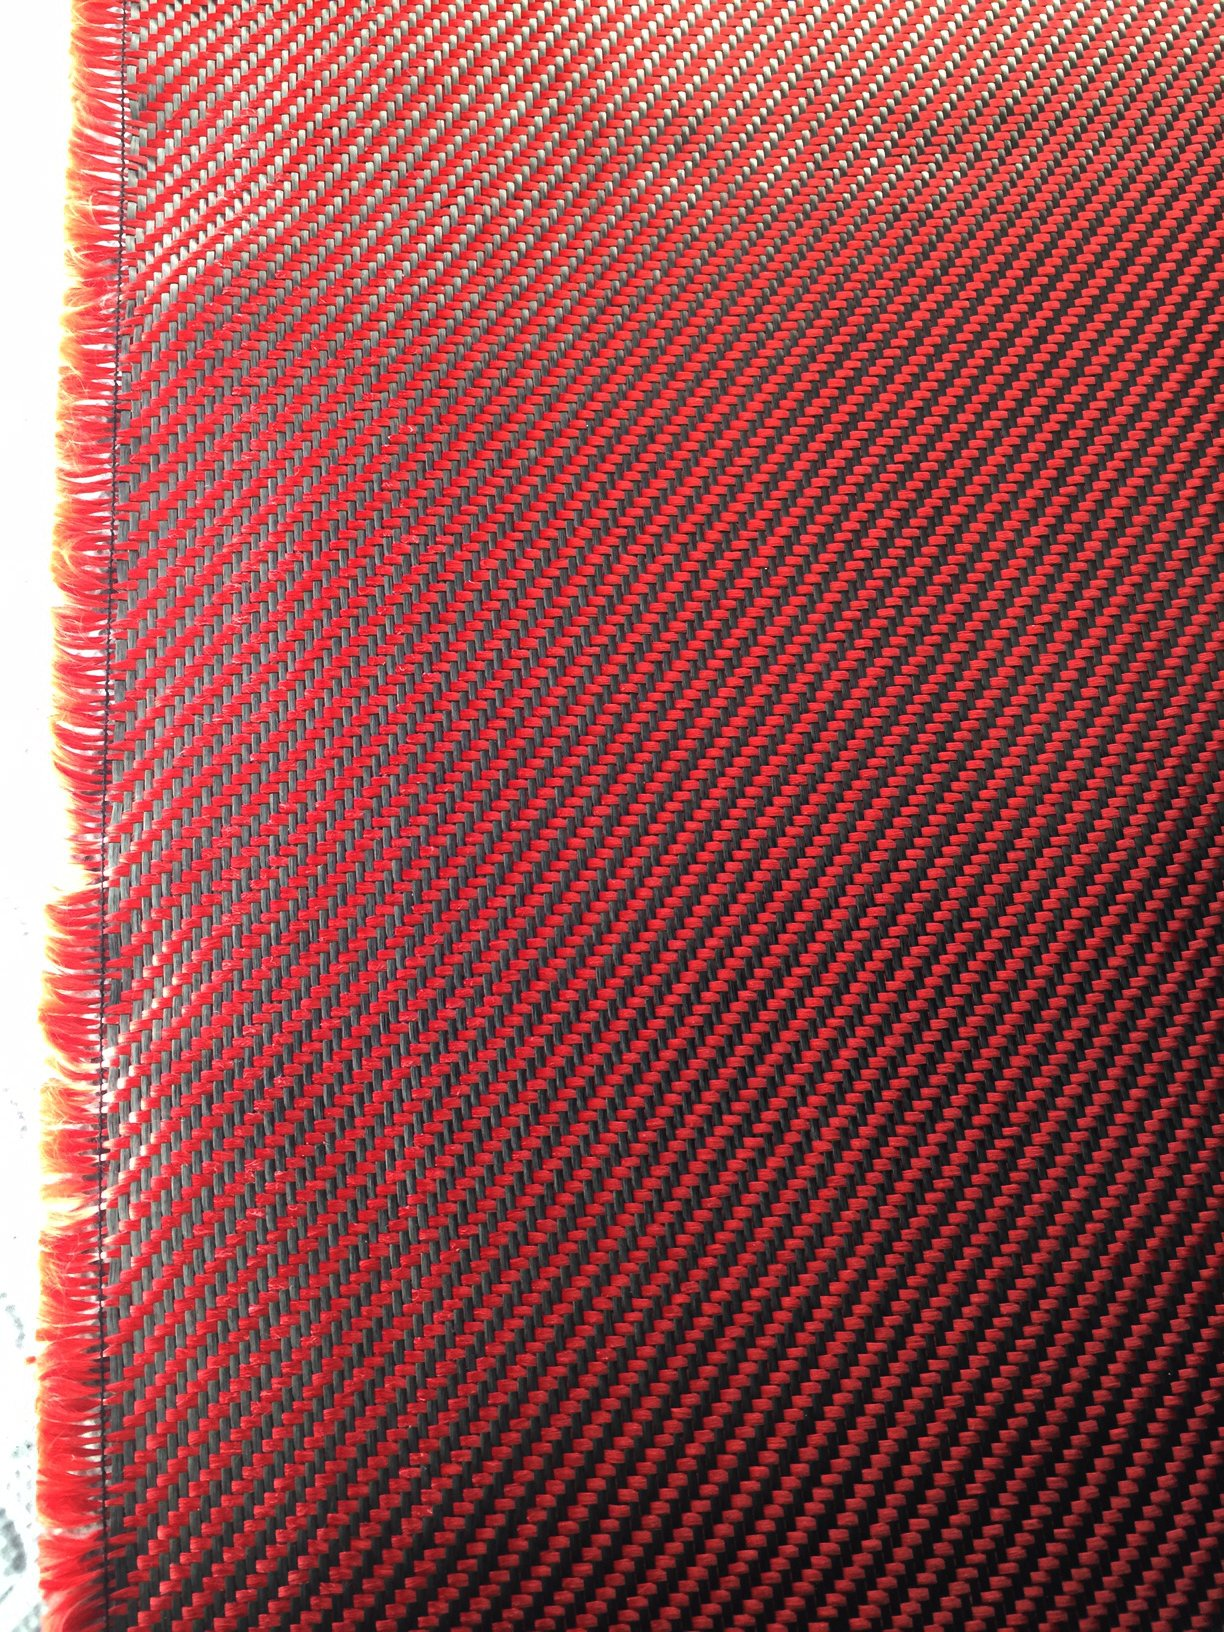 3K Full carbon fiber fabrics cloth sheet 200g/m2 twill weave 1 meter width-39.5'' x 39.5'' (red)